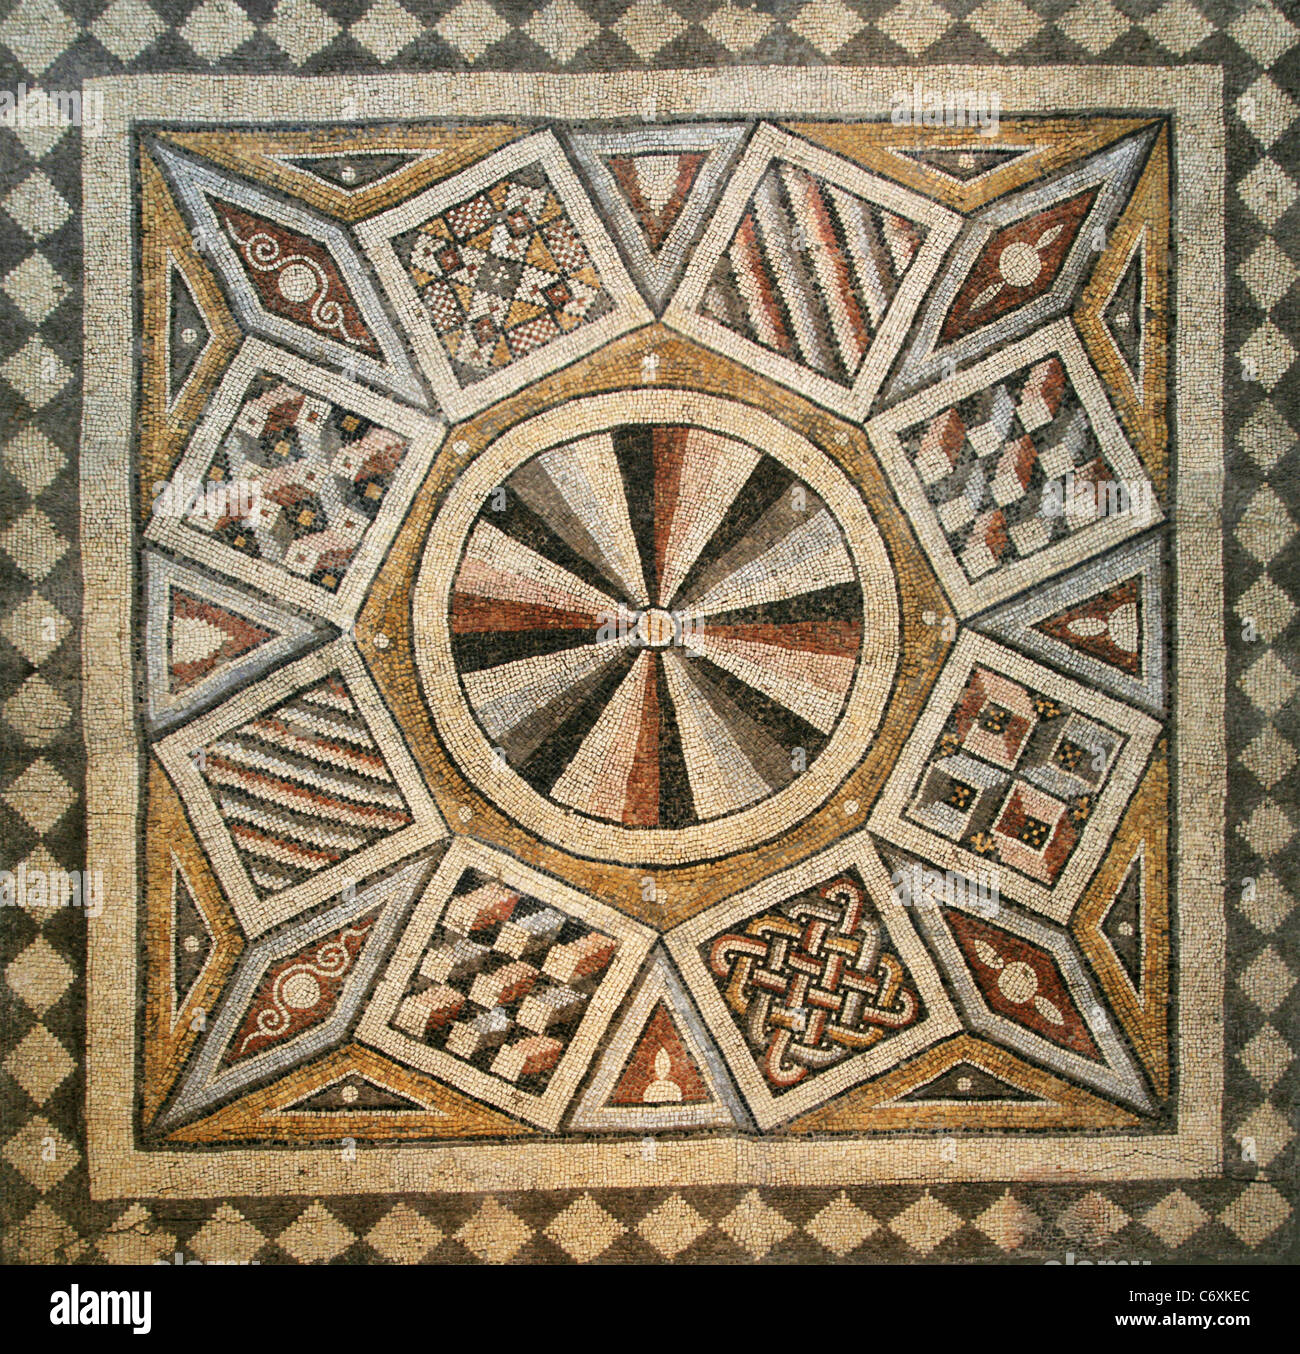 Roman Mosaic Tile Floor With Geometric Pattern Stock Photo